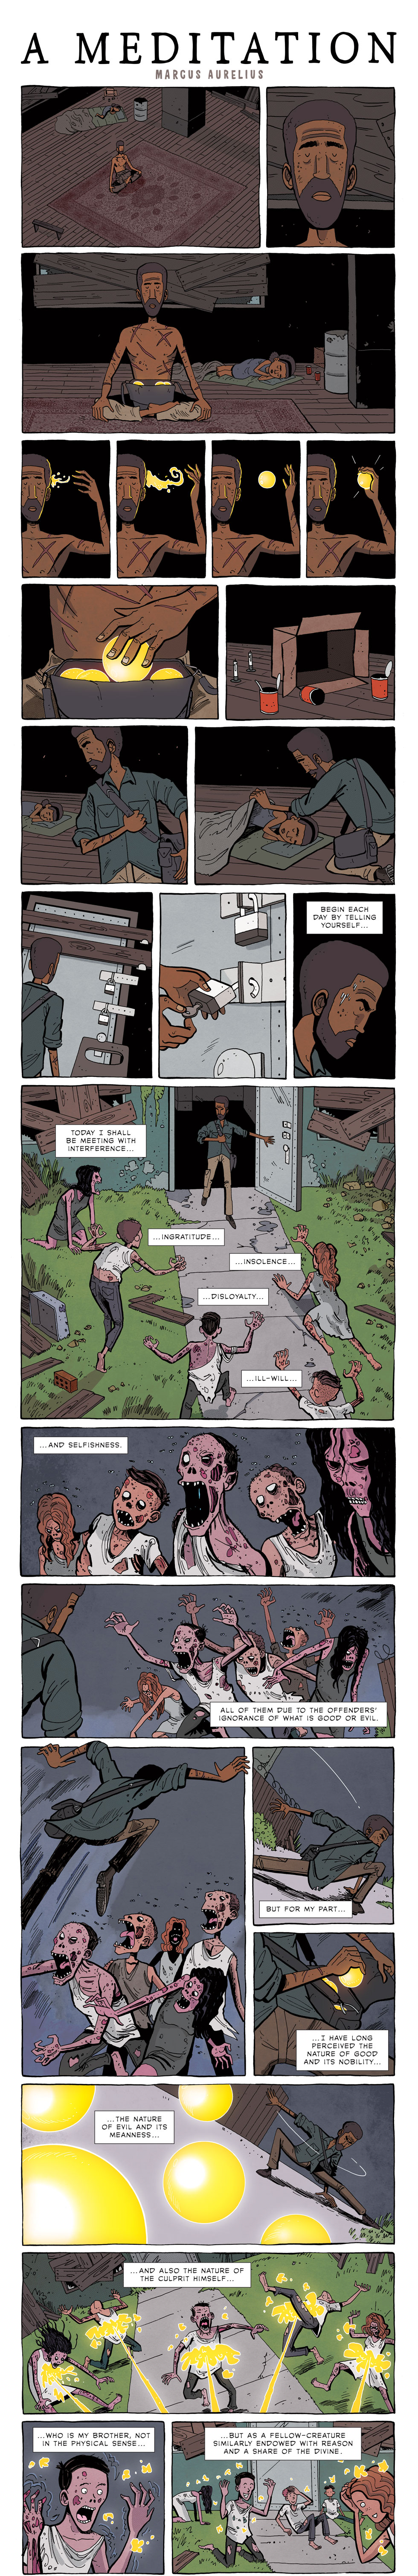 Rudyard Kipling if zen pencils